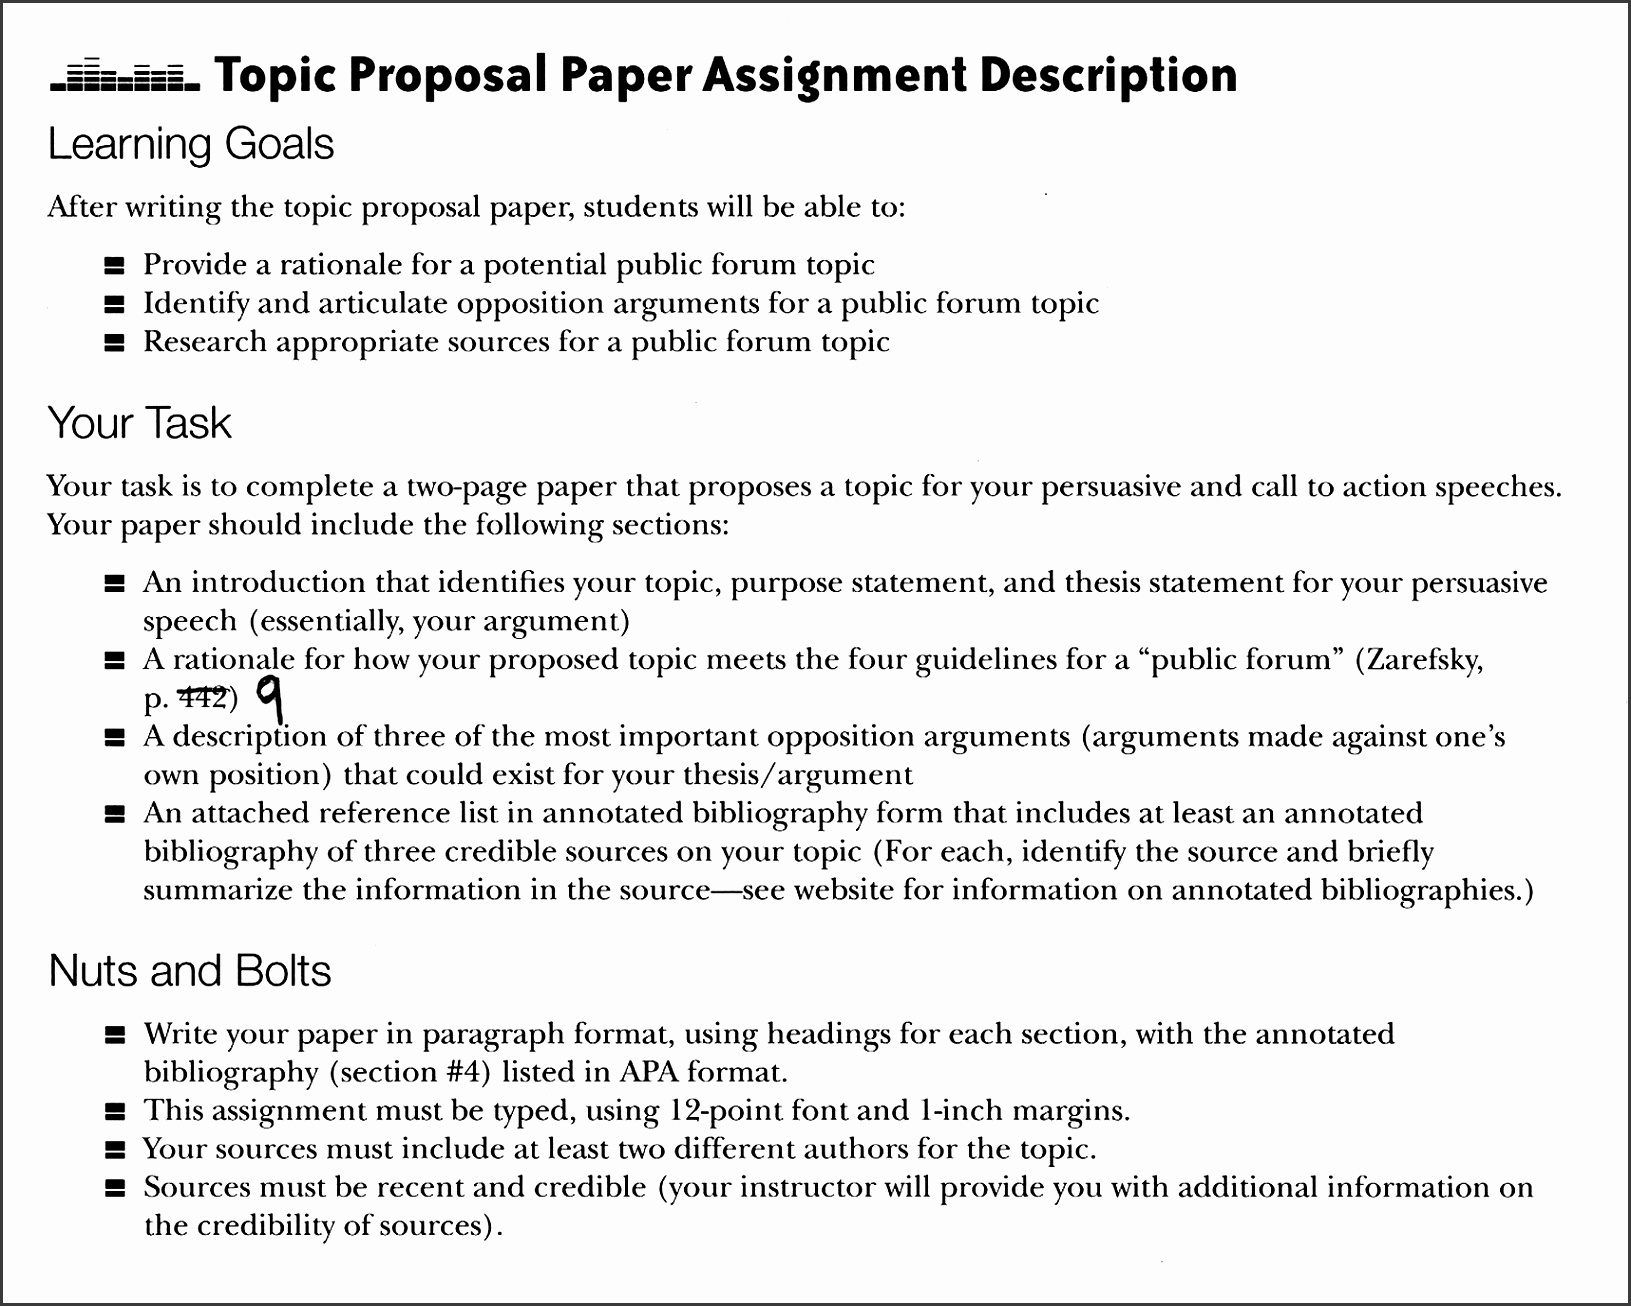 Proposal Document Template  Sampletemplatess  Thesis For Persuasive Essay Annotated Bibliography Topics  Proposal Document Template  Sampletemplatess  High School Entrance Essay Examples also Essay About Healthy Diet